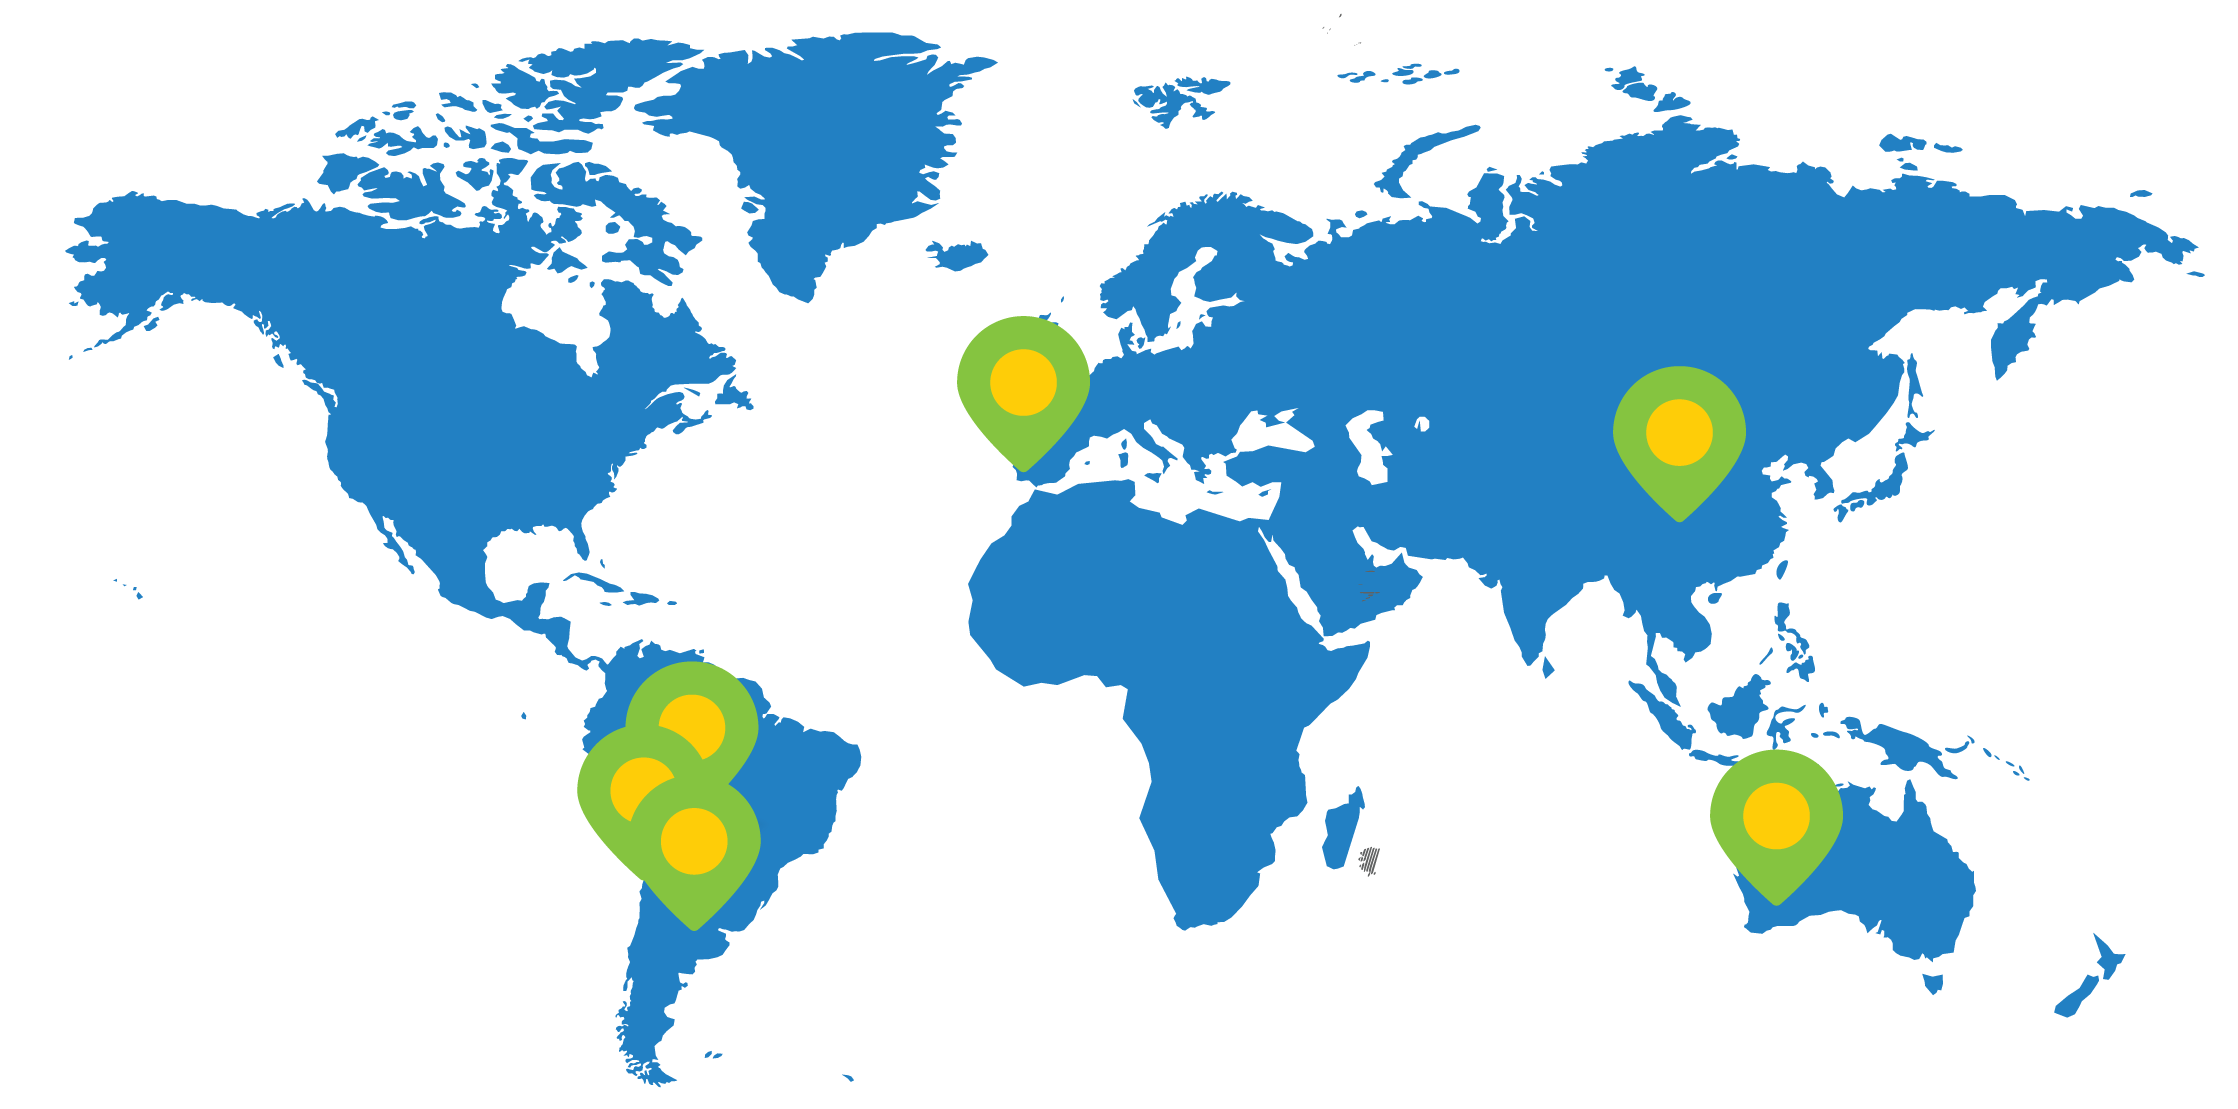 World map showing lithium mines in Australia, Chile, Argentina, Bolivia, and United States (Nevada).